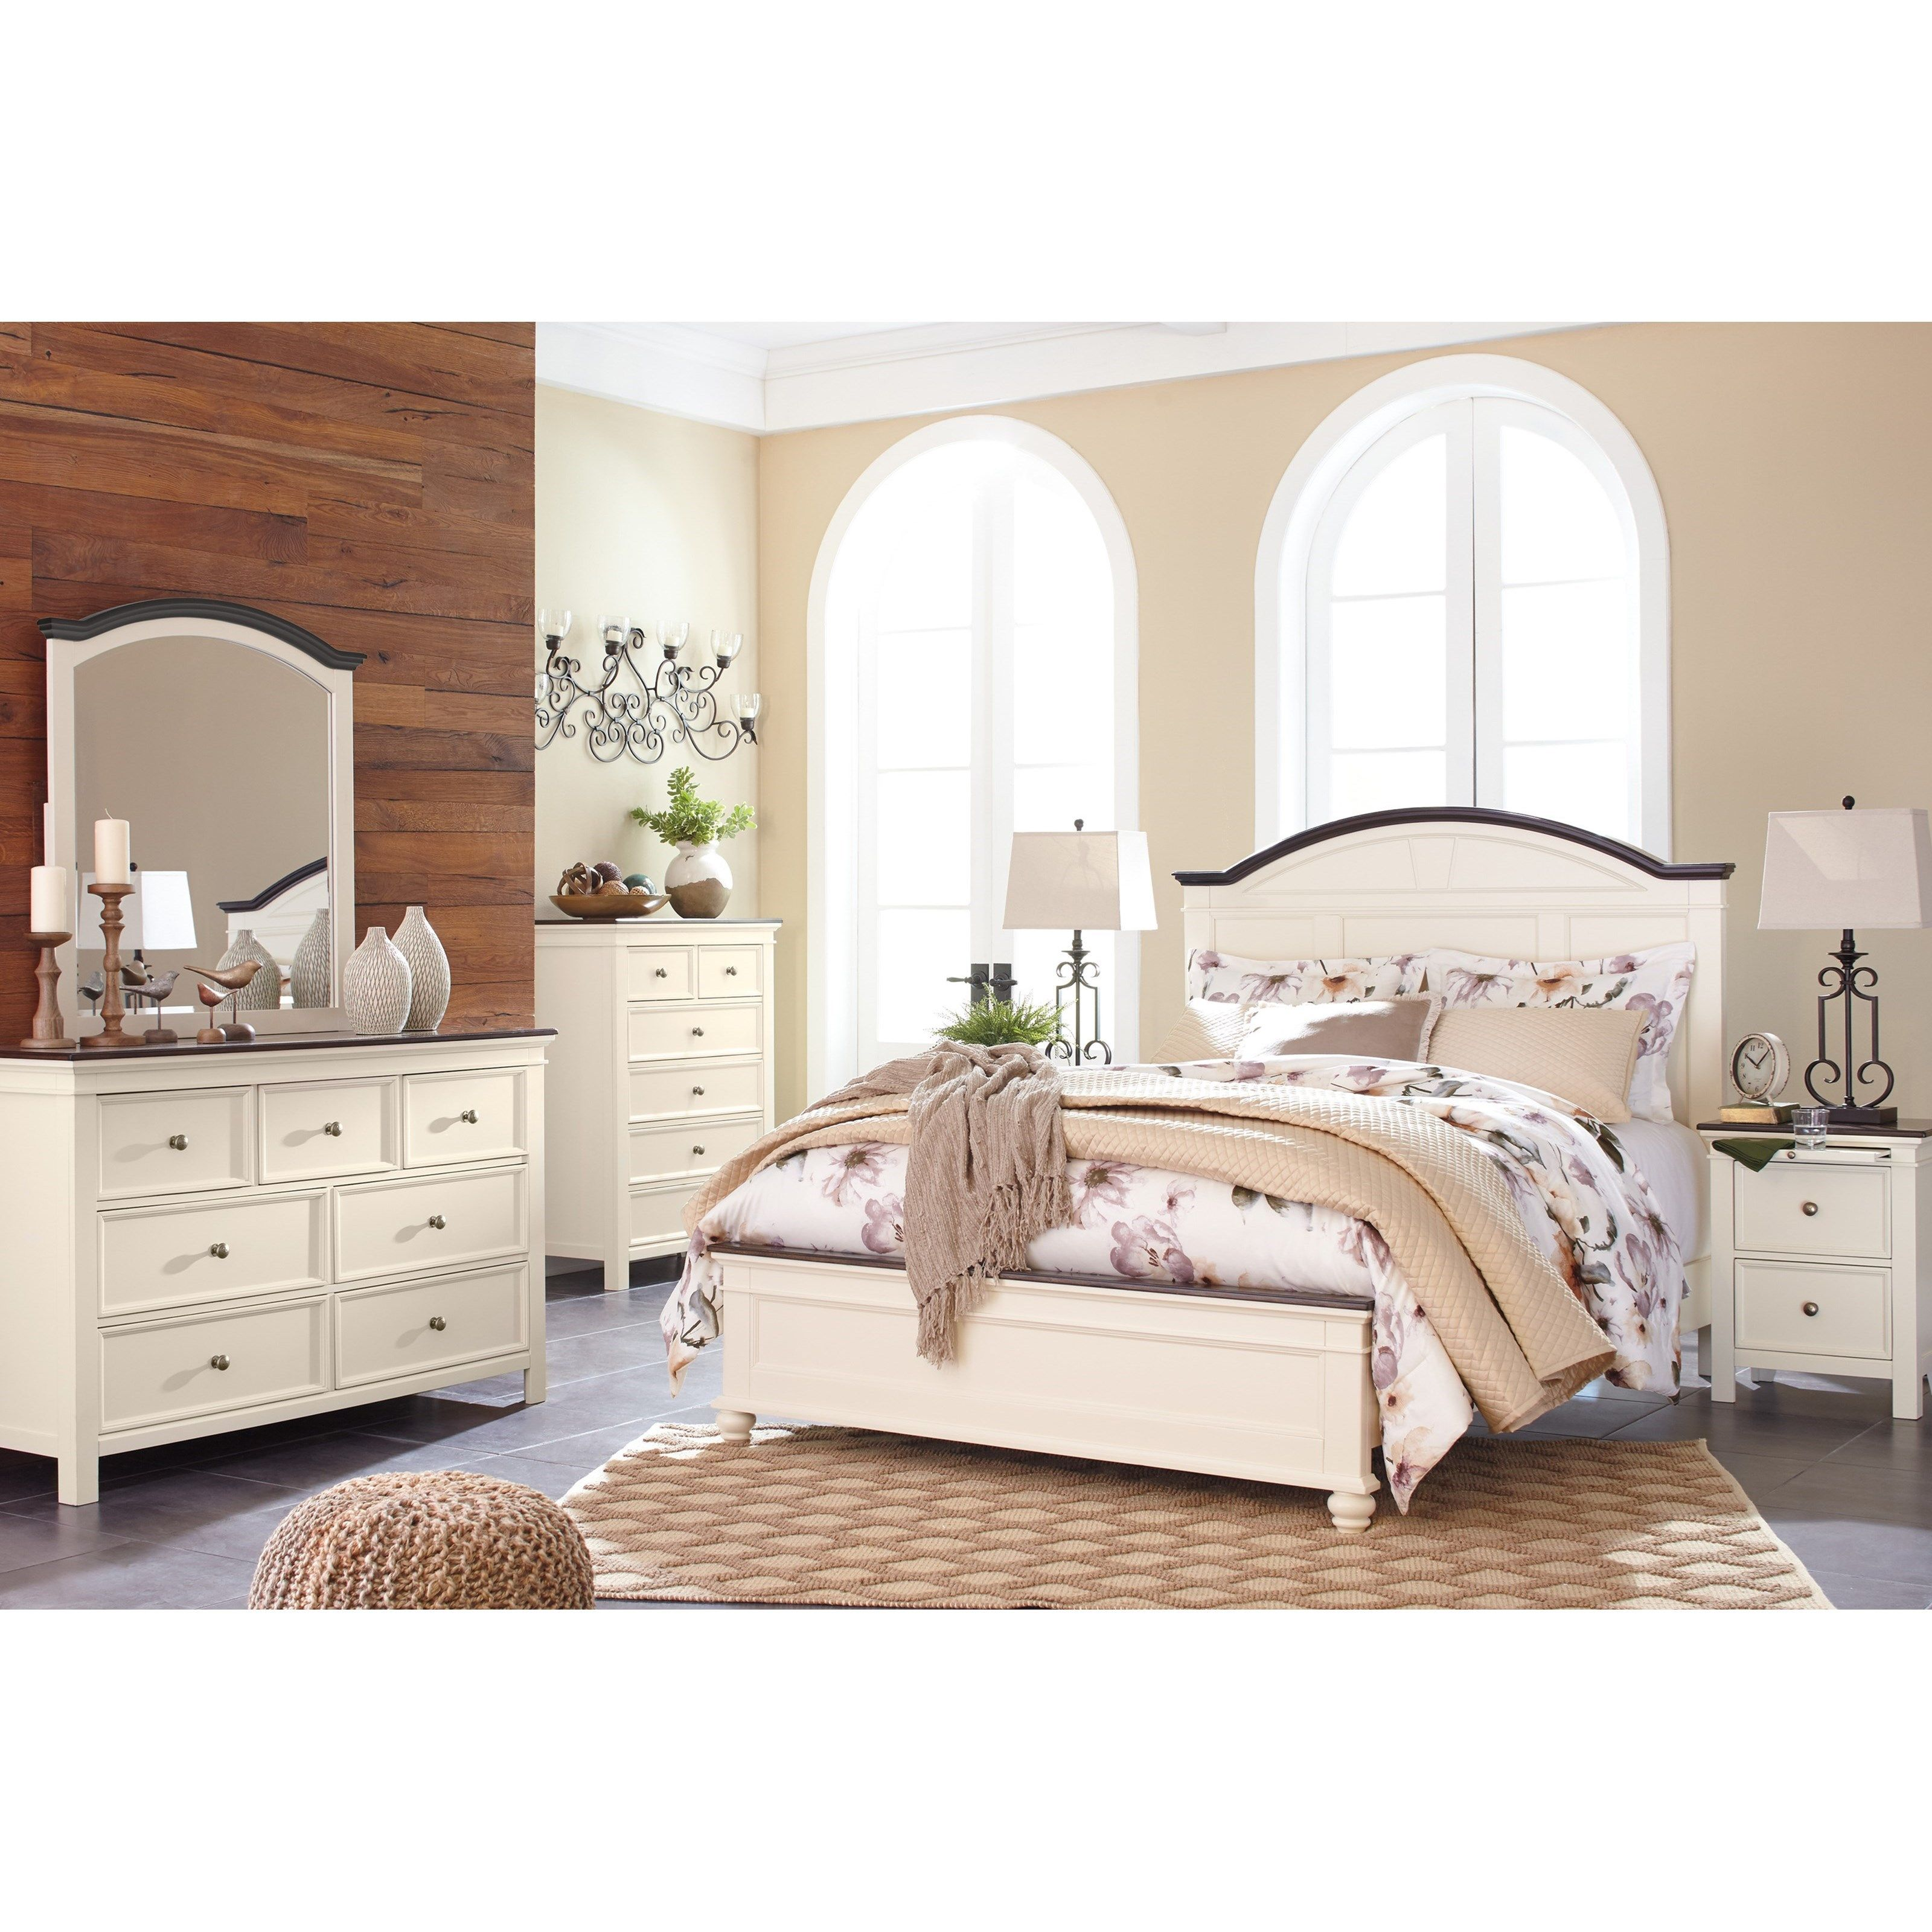 Woodanville Queen Bedroom Group by Signature Design by